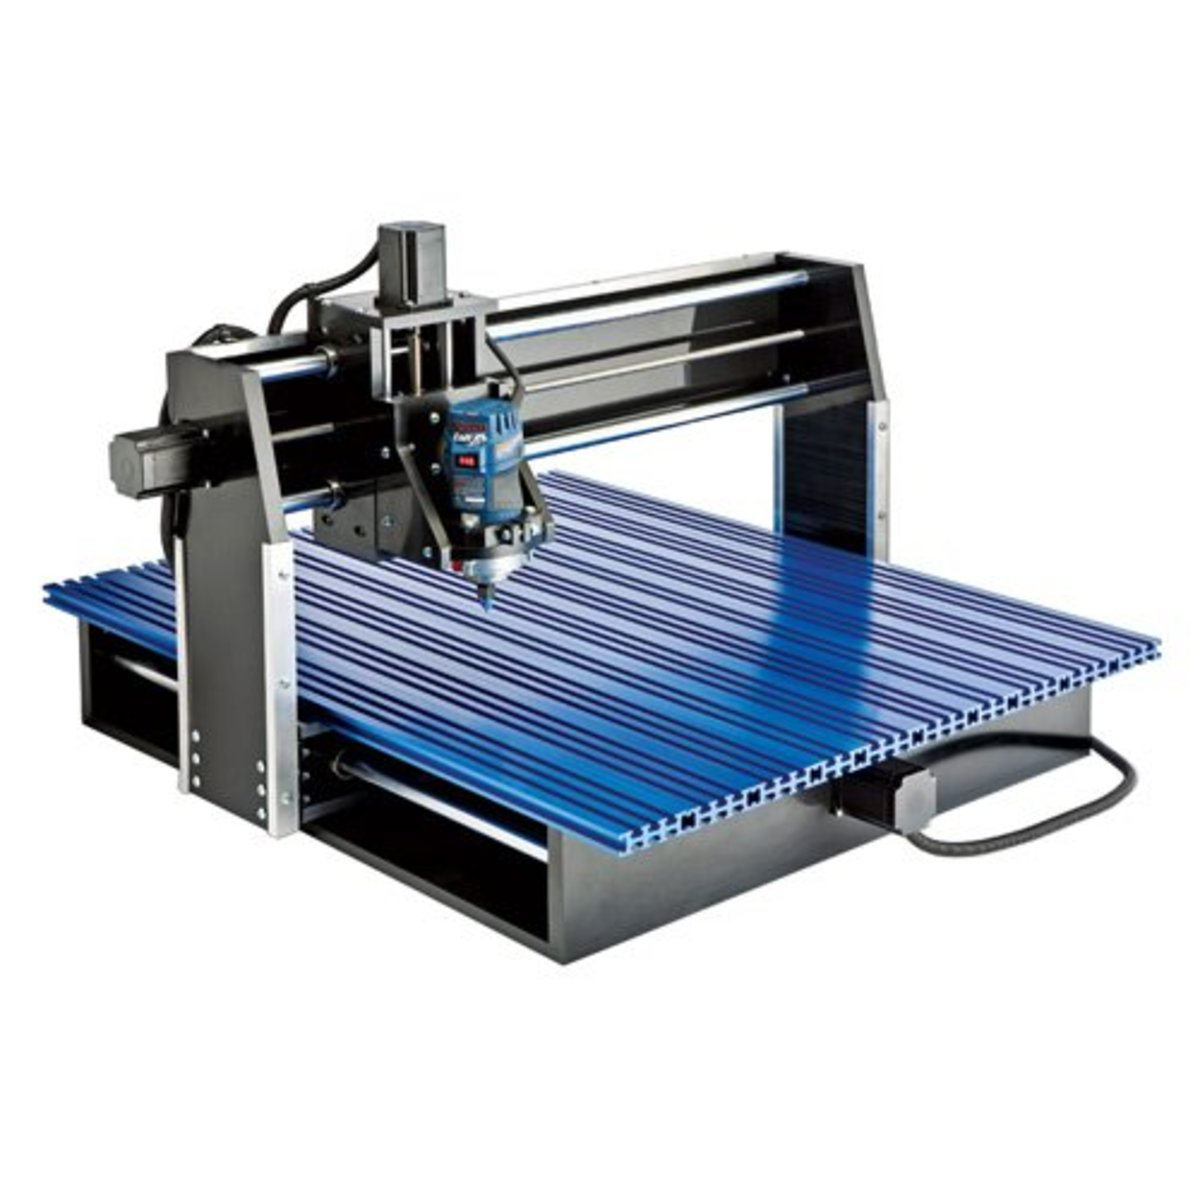 The Rockler CNC Shark Pro Plus Routing System is a great CNC machine option for the money you pay.